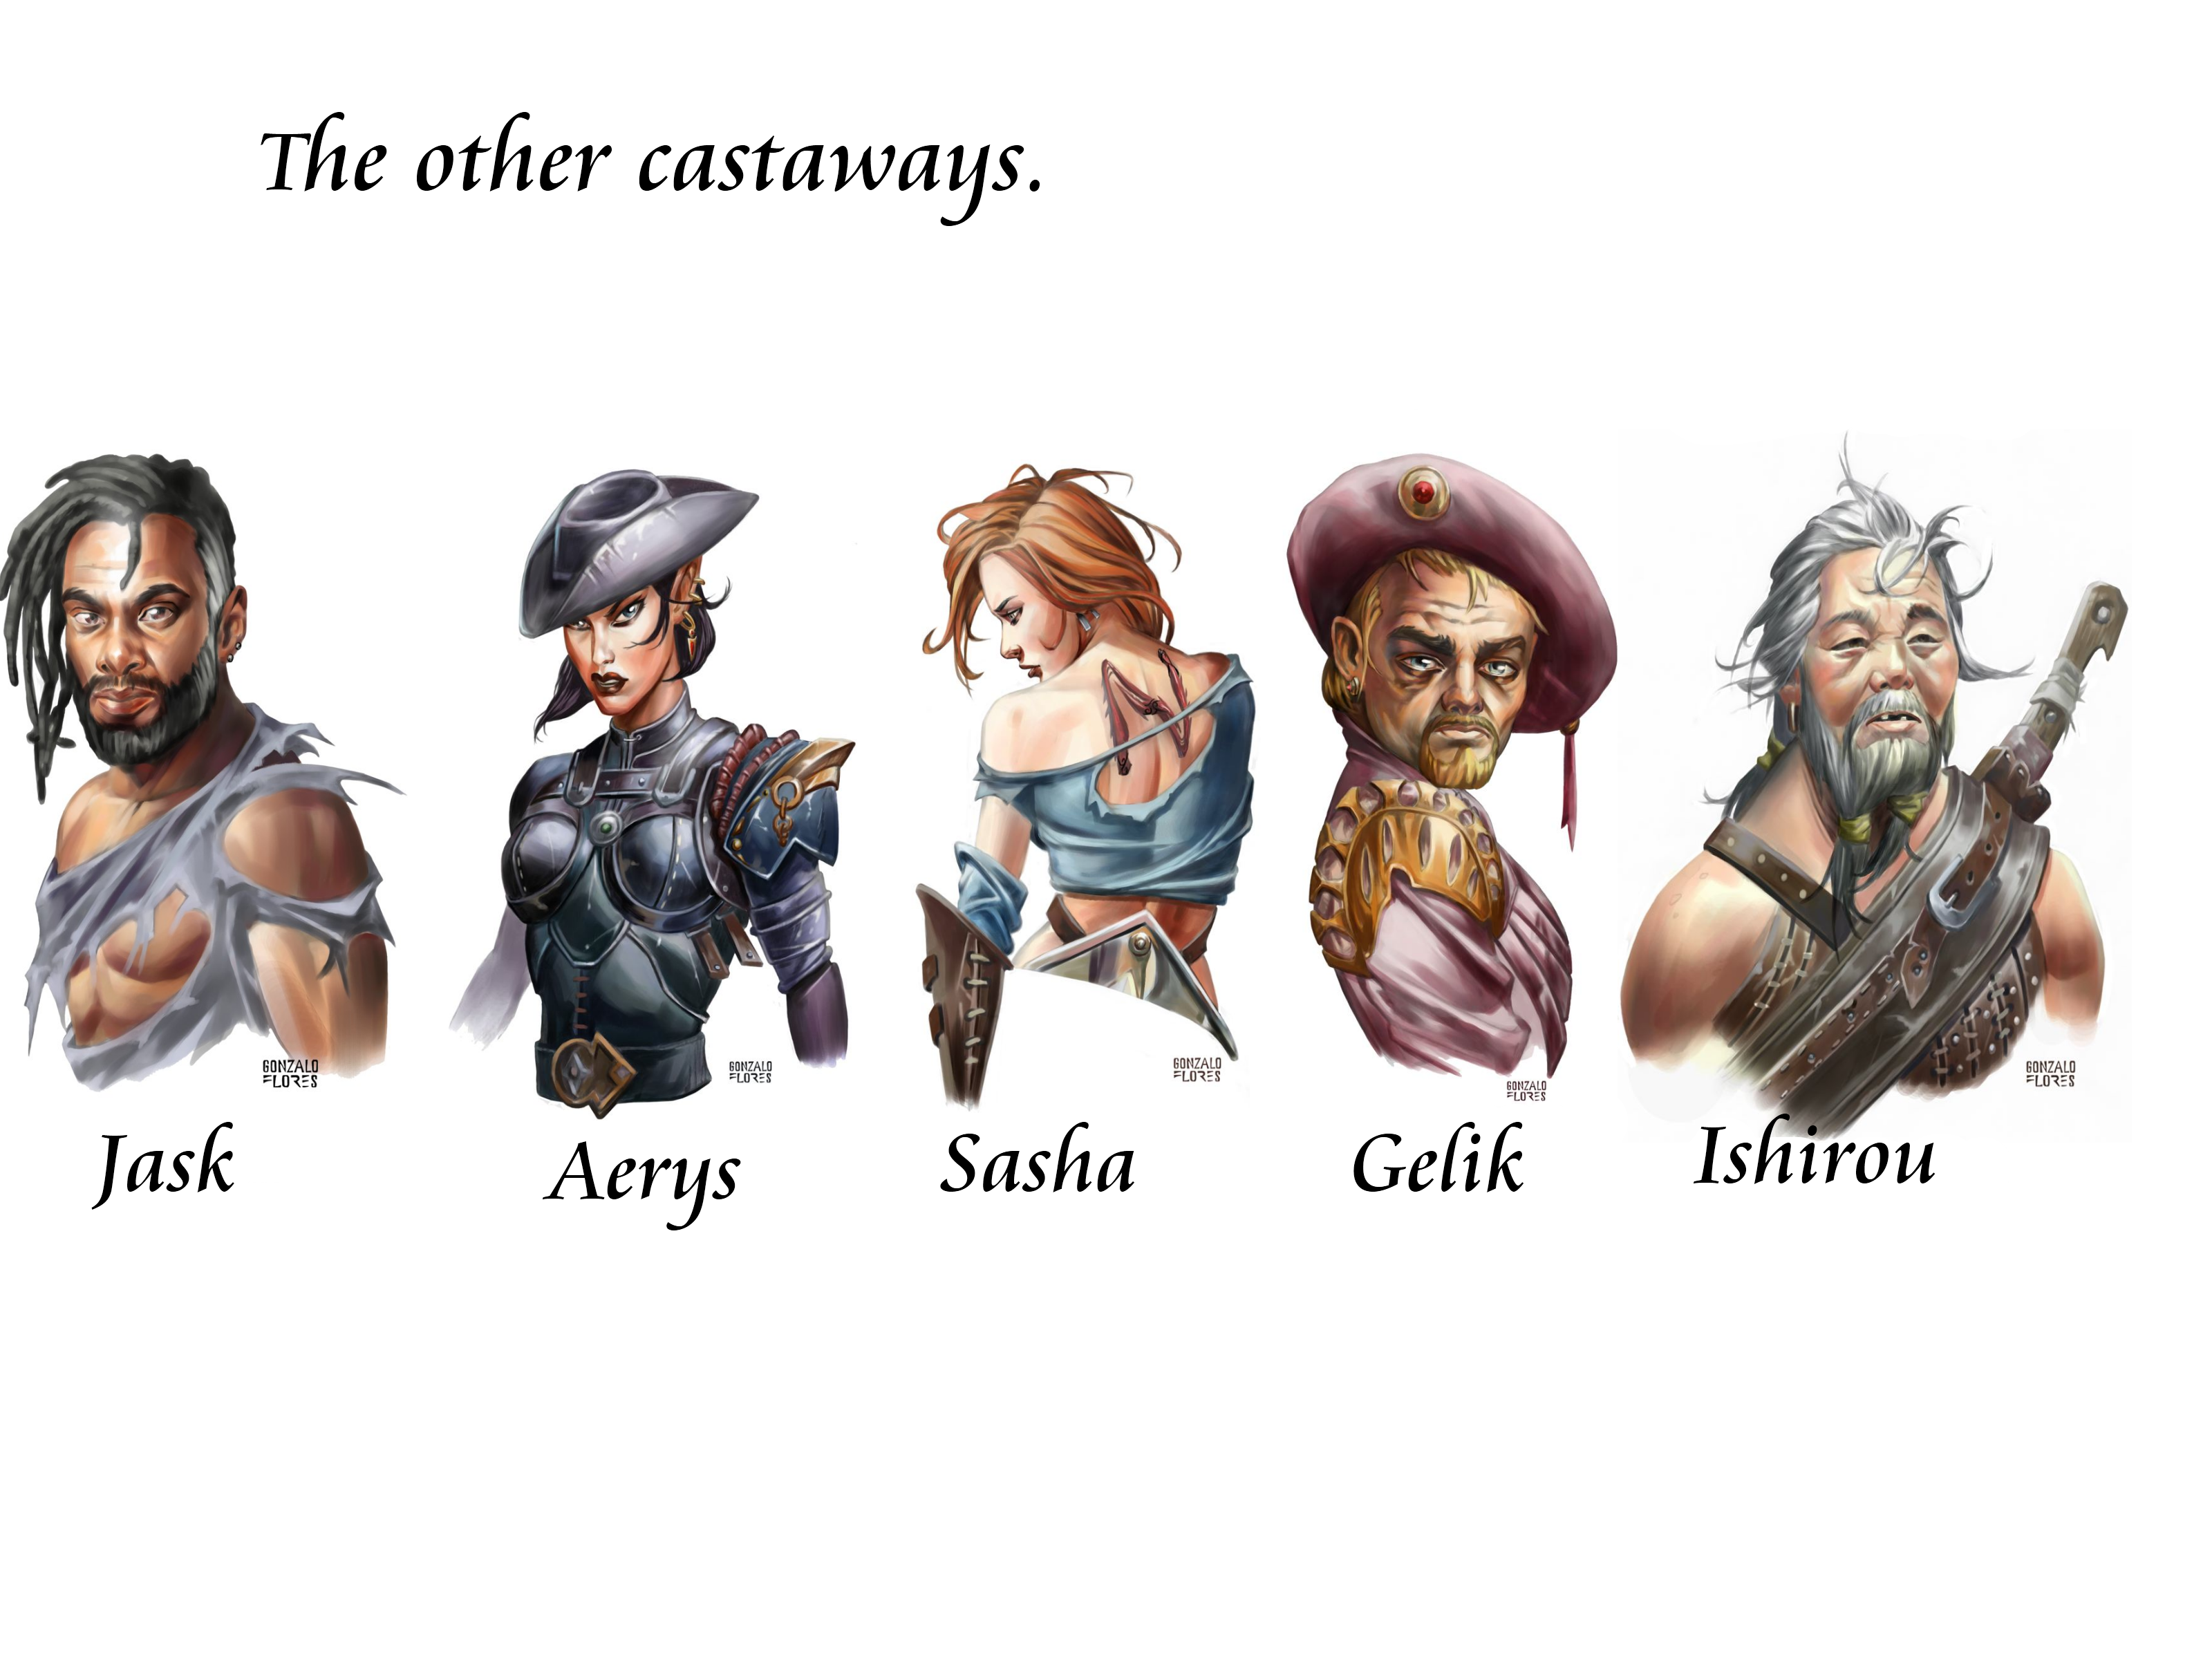 The_other_castaways..png